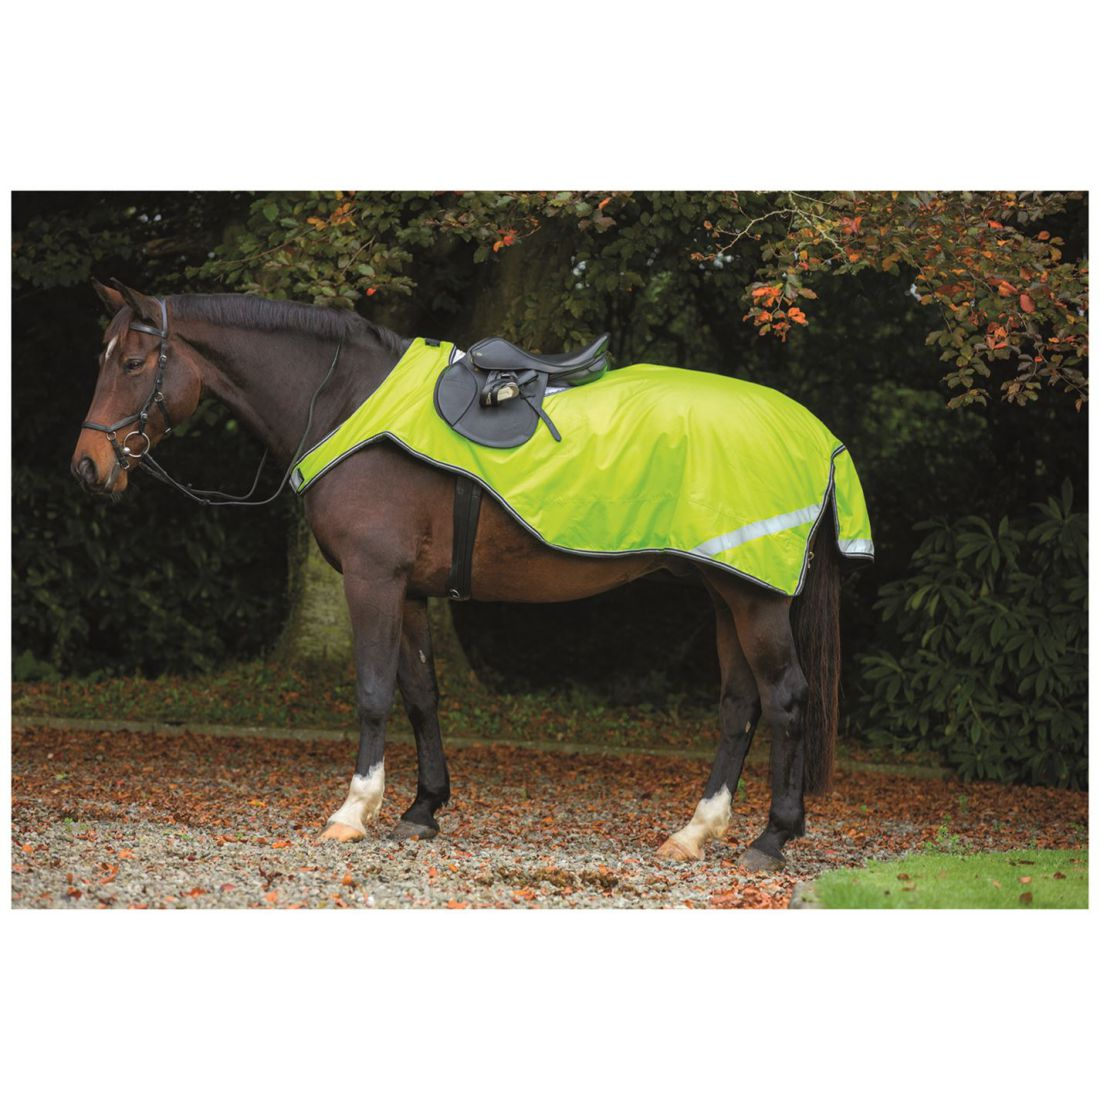 Horseware Reflective Competition Sheet Unisex Horse Rug Water Repellent